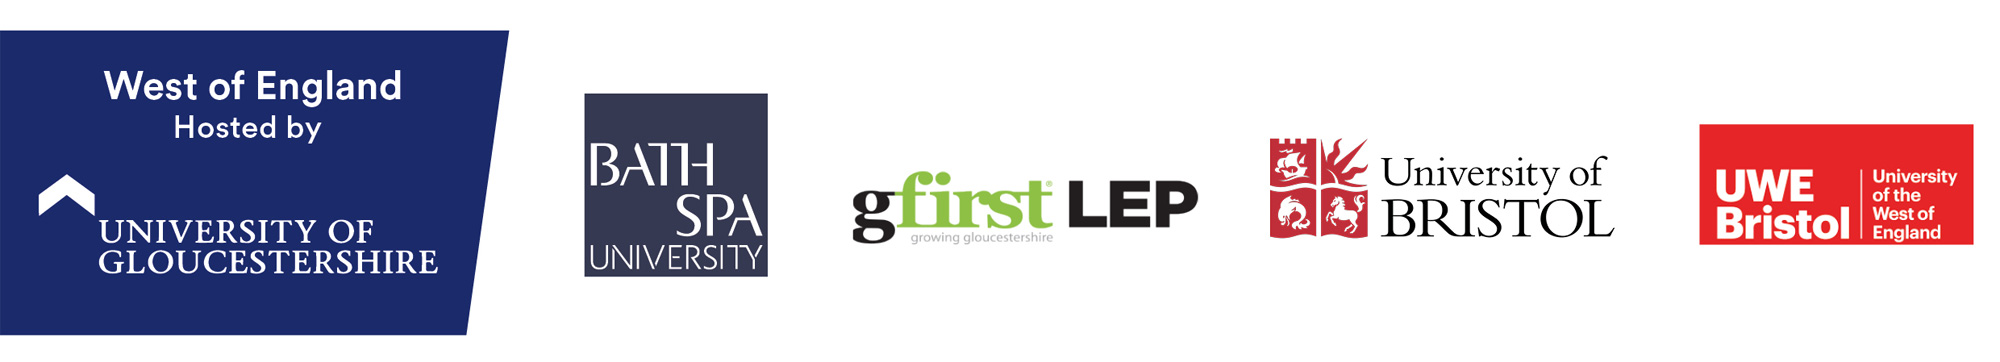 west of england partner logos - bath spa university, G first LEP, university of gloucestershire (host), bristol university and university of the west of england